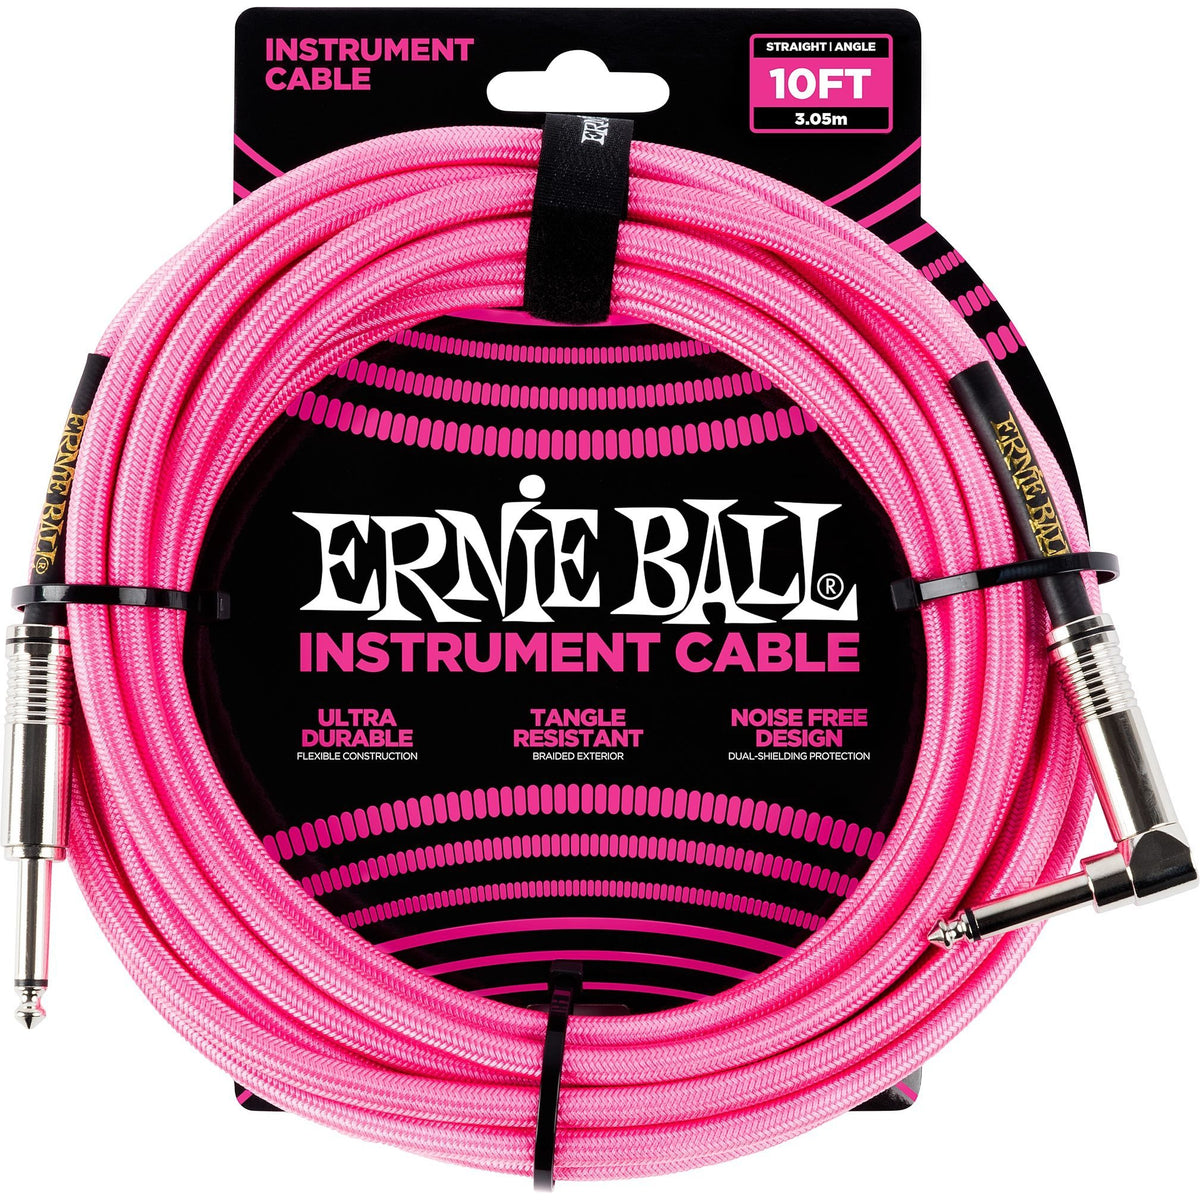 Ernie Ball Braided Instrument Cable, Neon Pink, 10 Foot